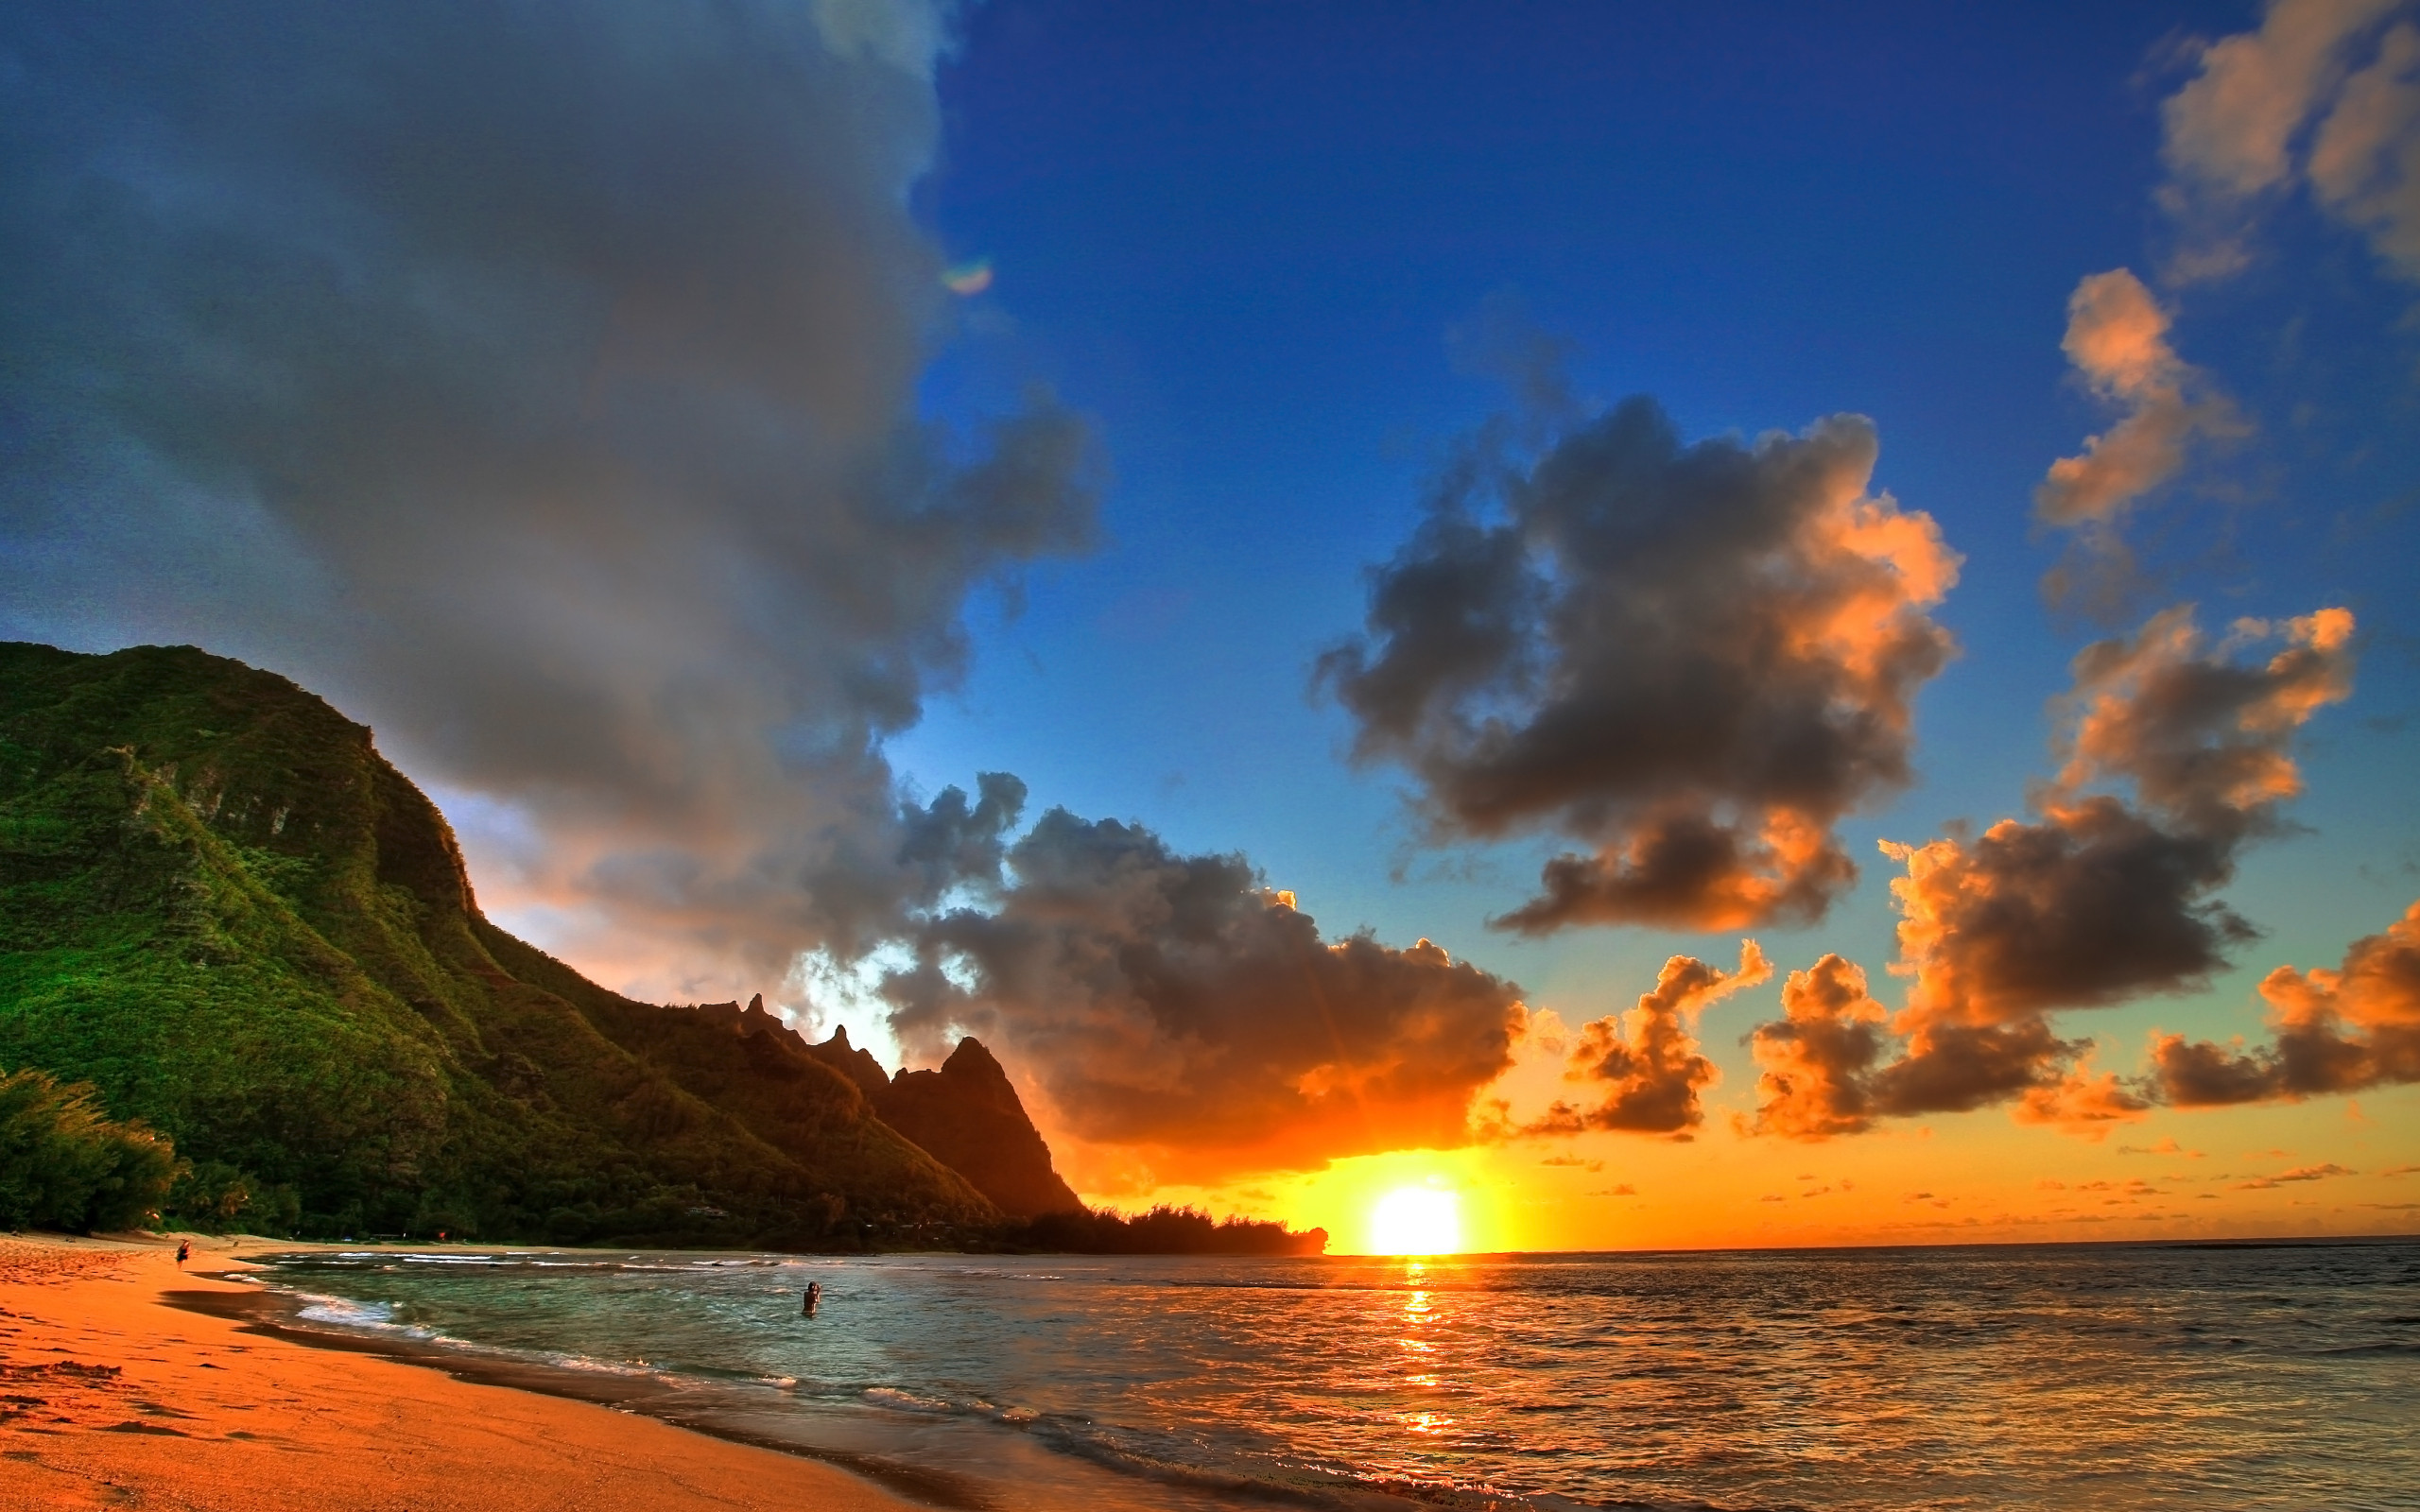 2560x1600 amazing hawaii beach sunset wallpaper image